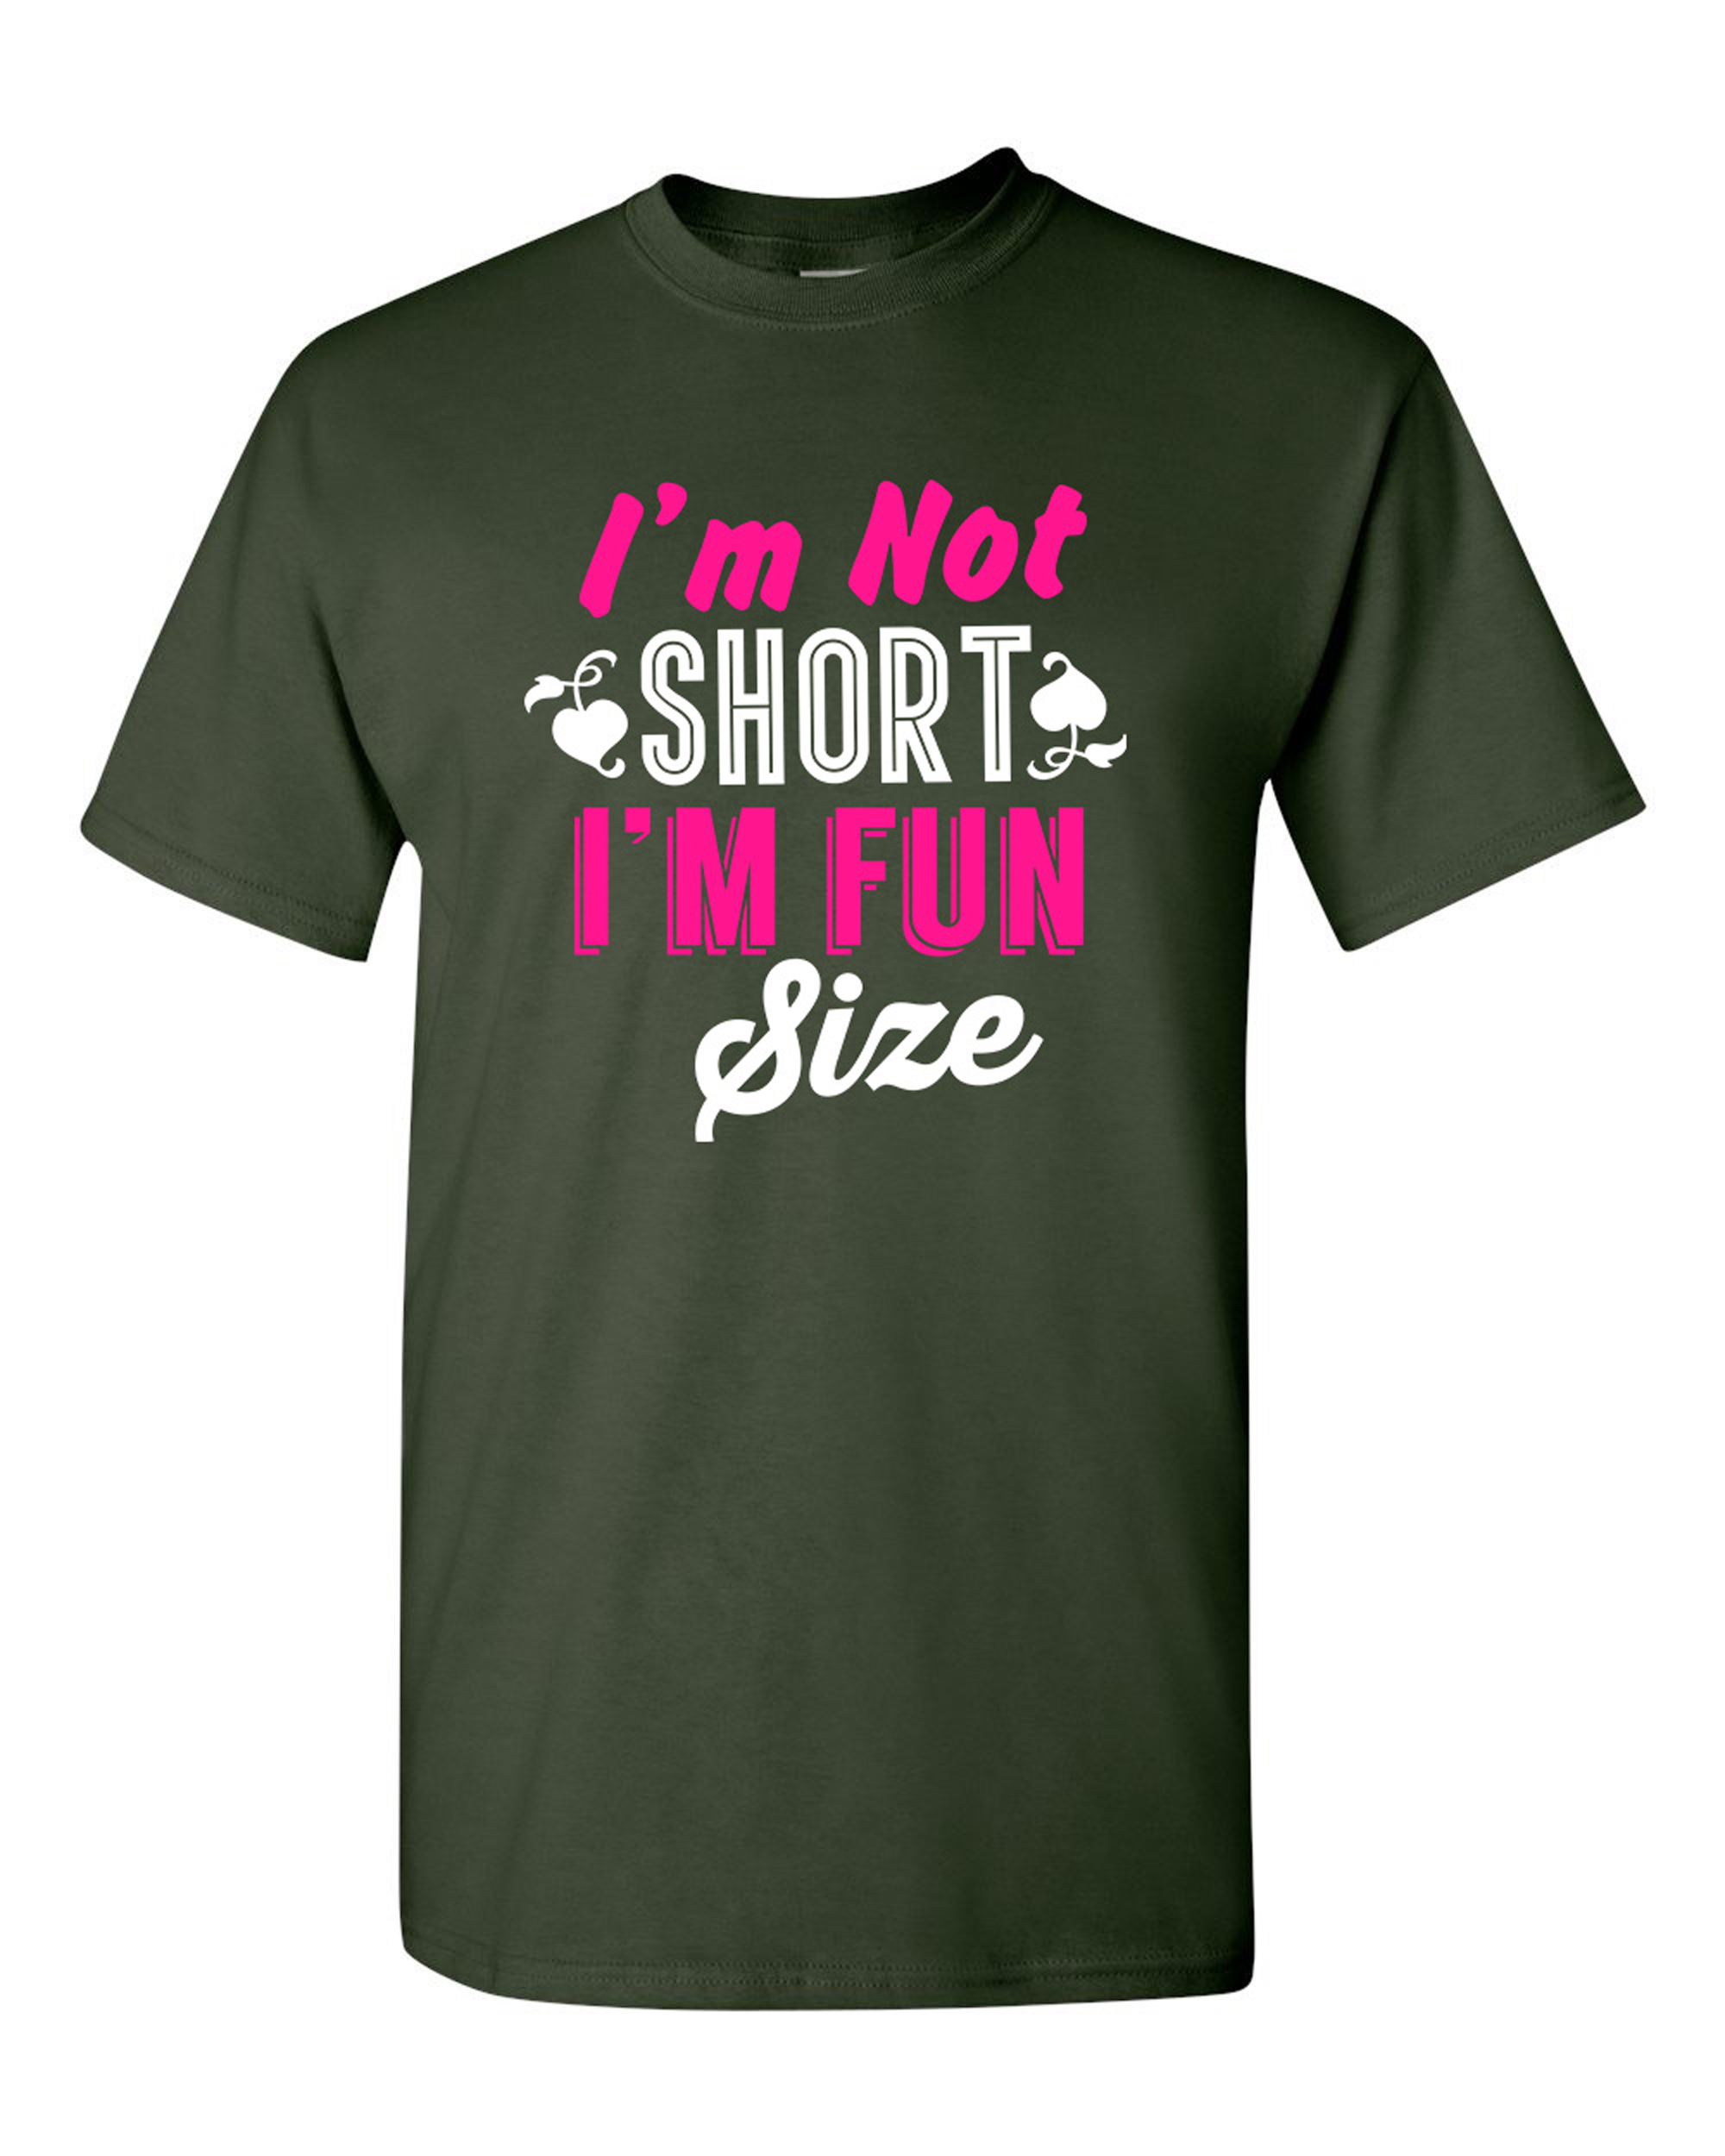 I'm Not Short I'm Fun Size Little People Funny Humor DT Adult T-Shirt Tee